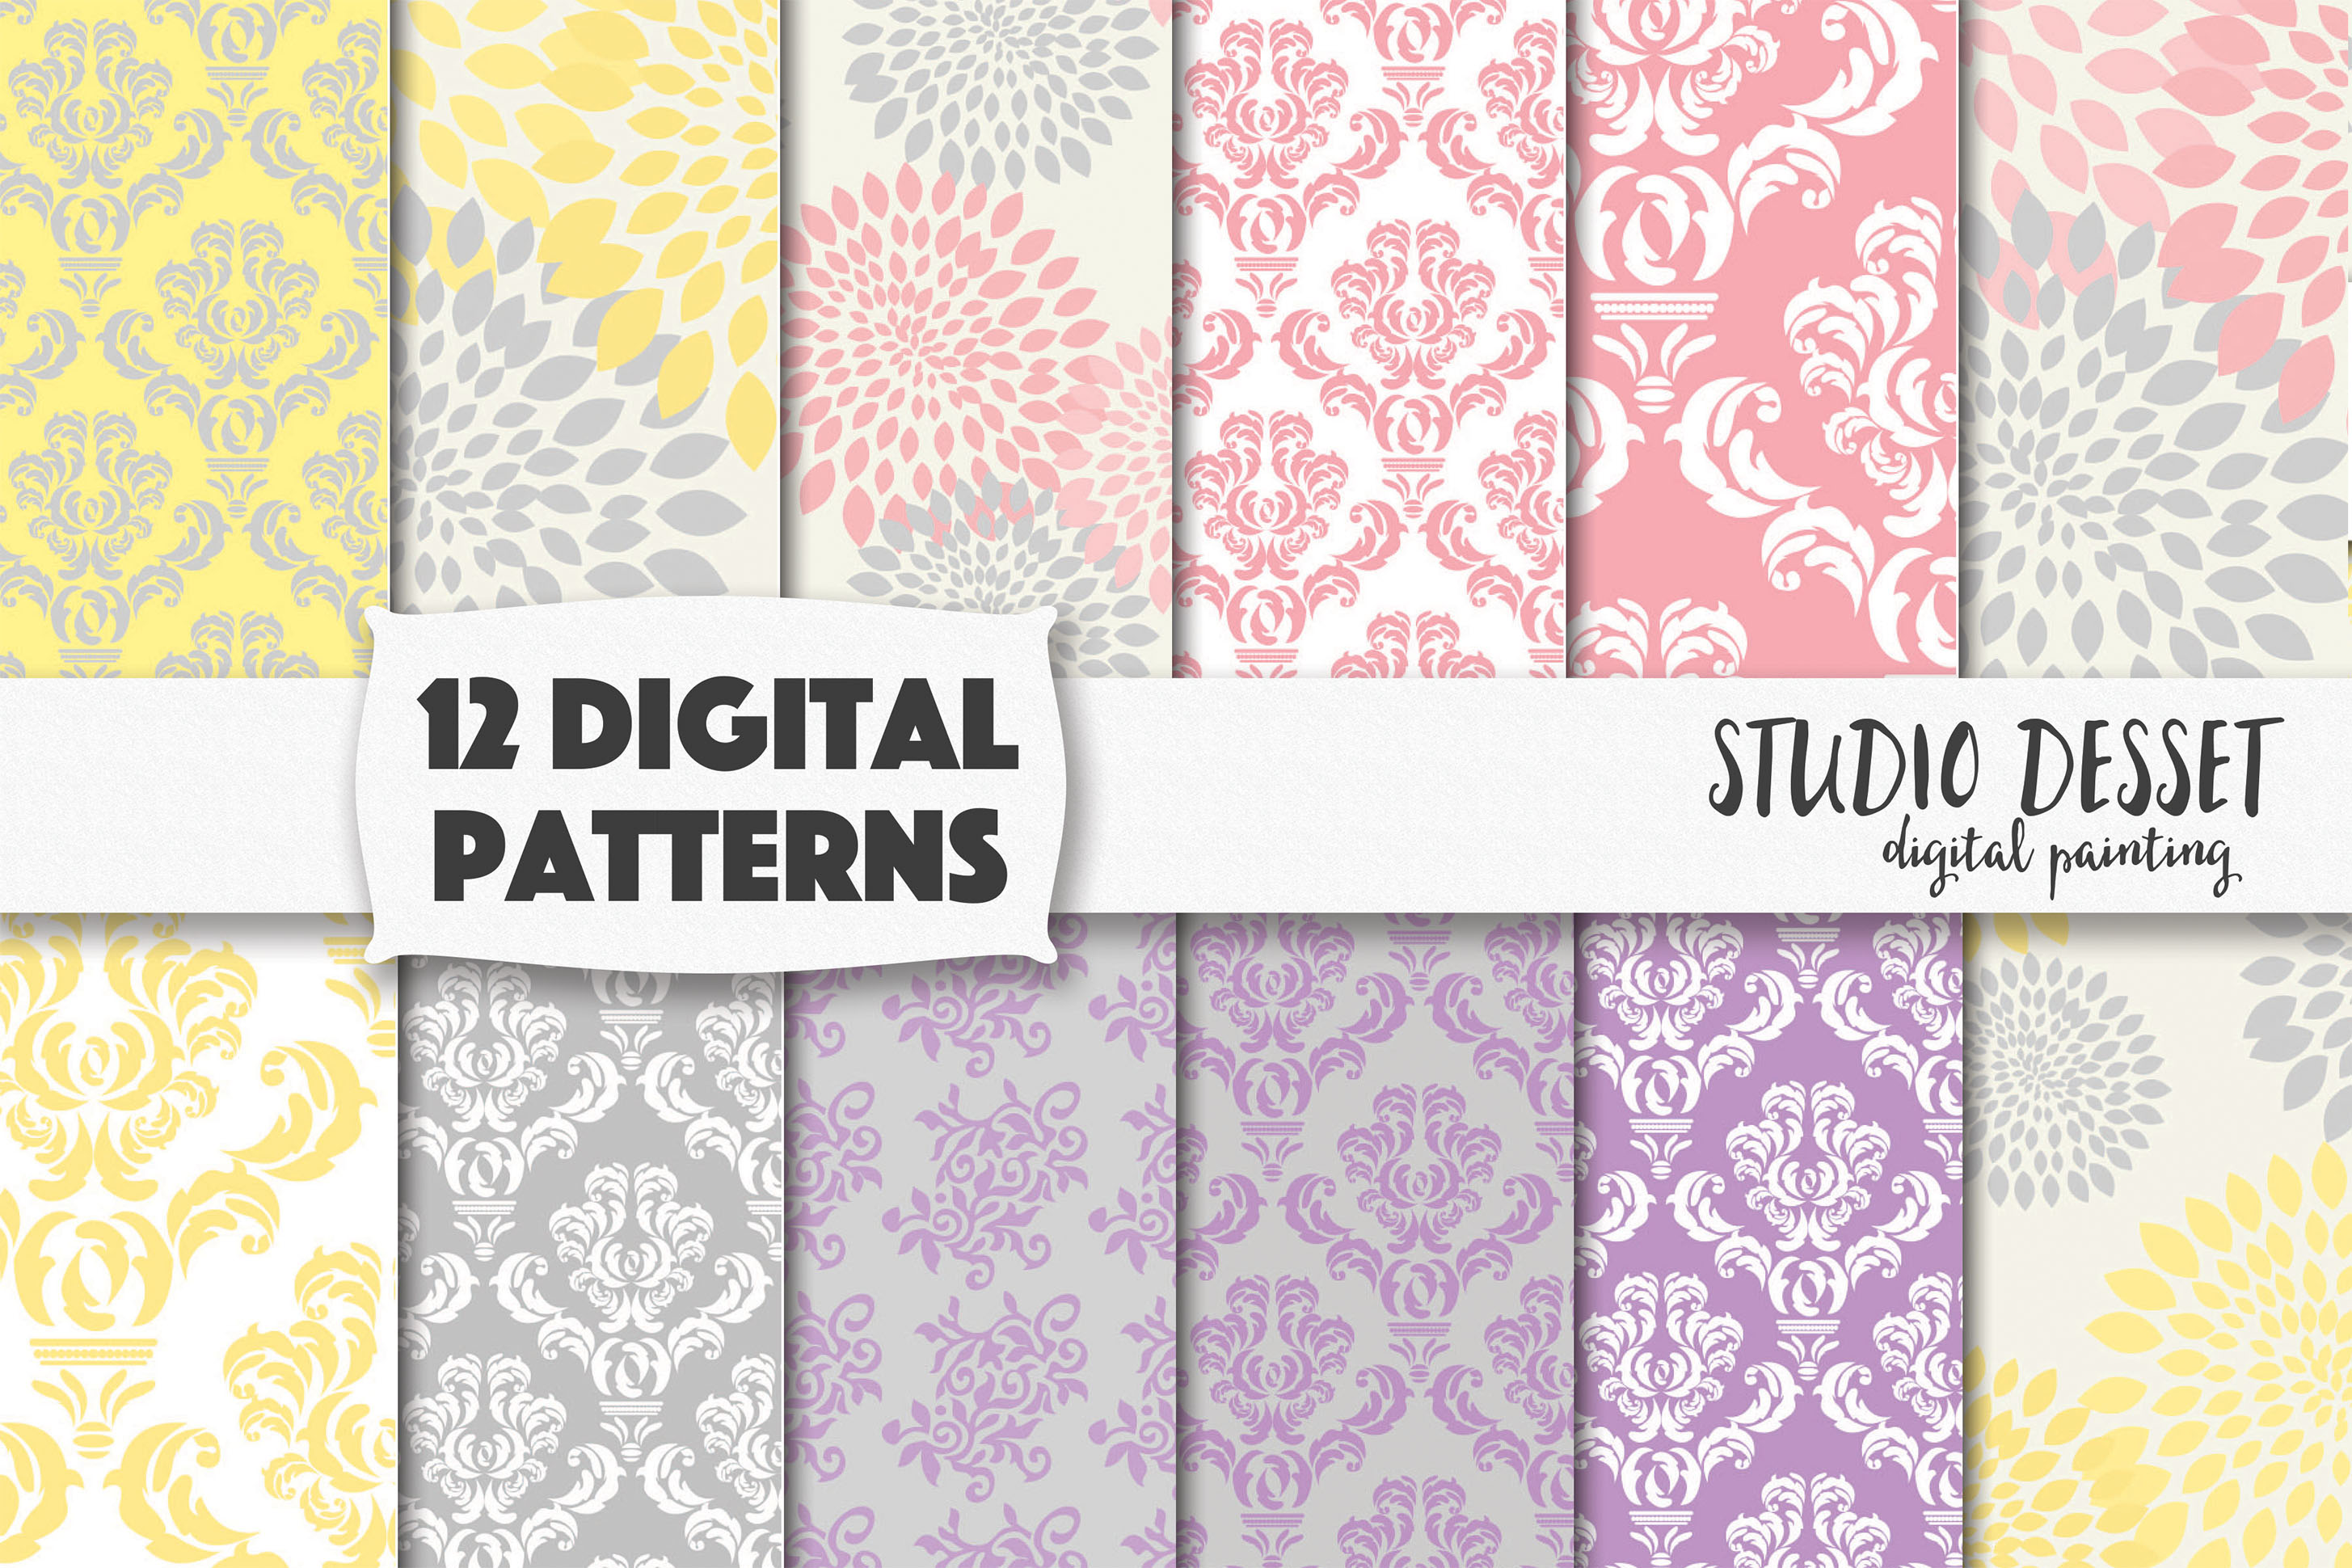 Damask Digital Patterns Floral Pastel Backgrounds